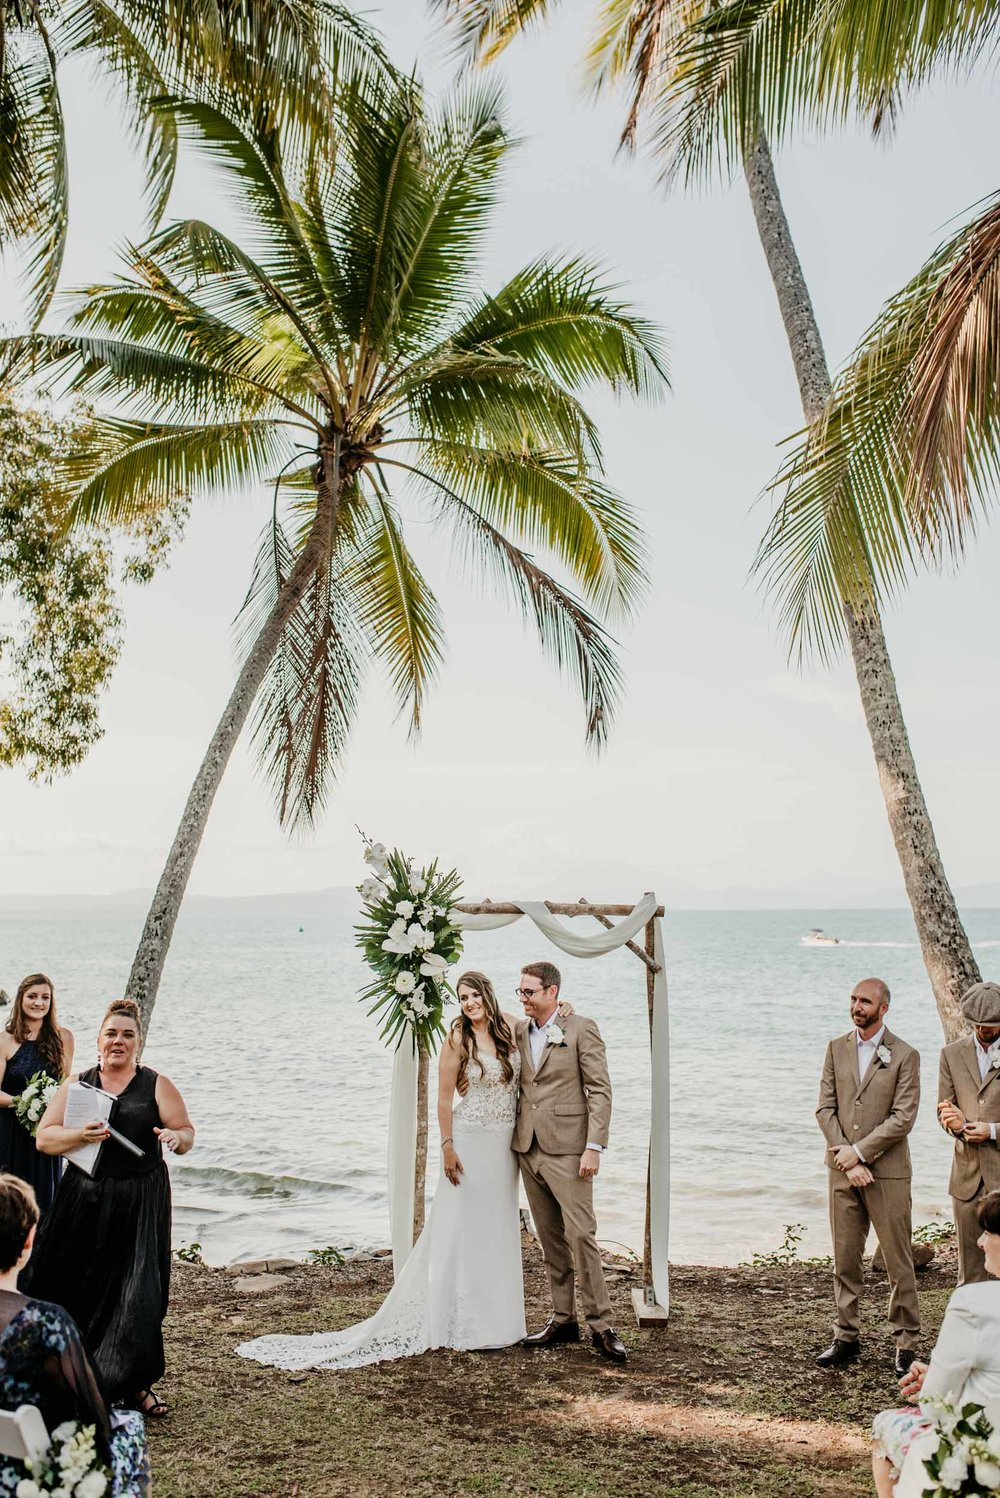 The Raw Photographer - Cairns Wedding Photographer - Sugar Wharf - Port Douglas Reception - Little Cove Ceremony-51.jpg